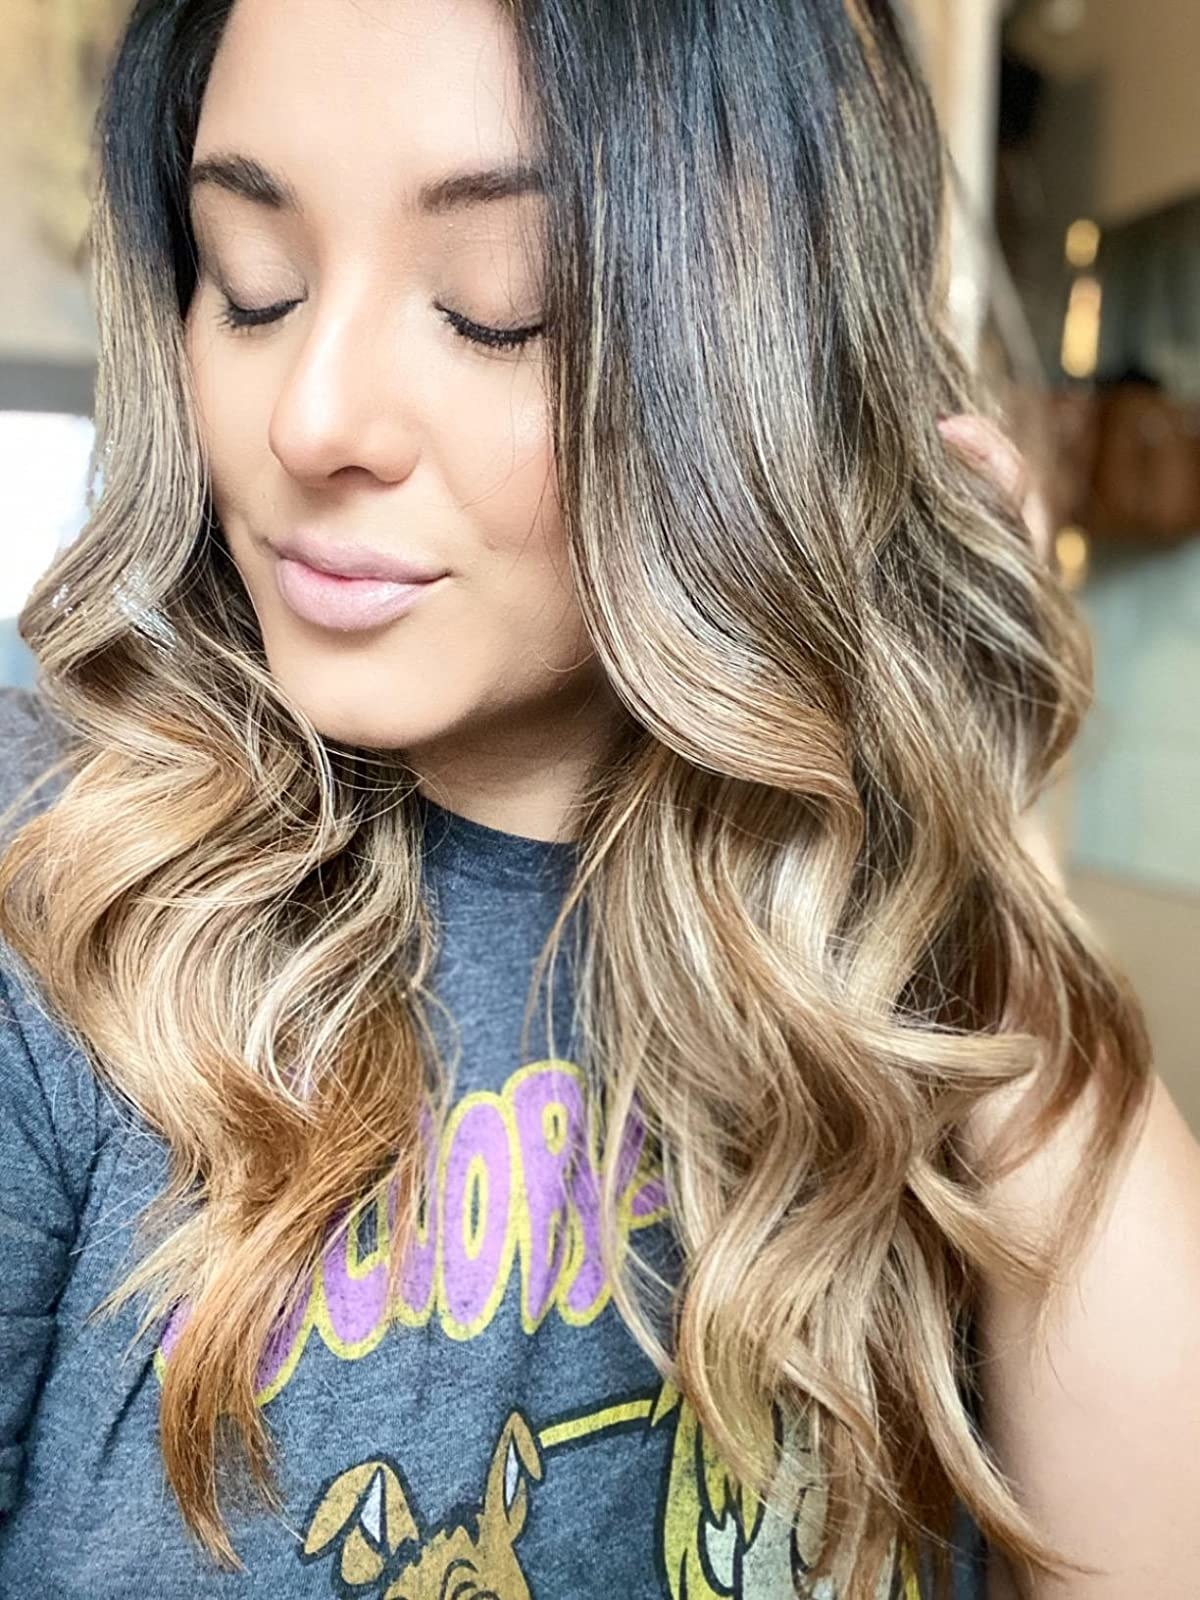 Reviewer showing off her curls achieved by using the wand